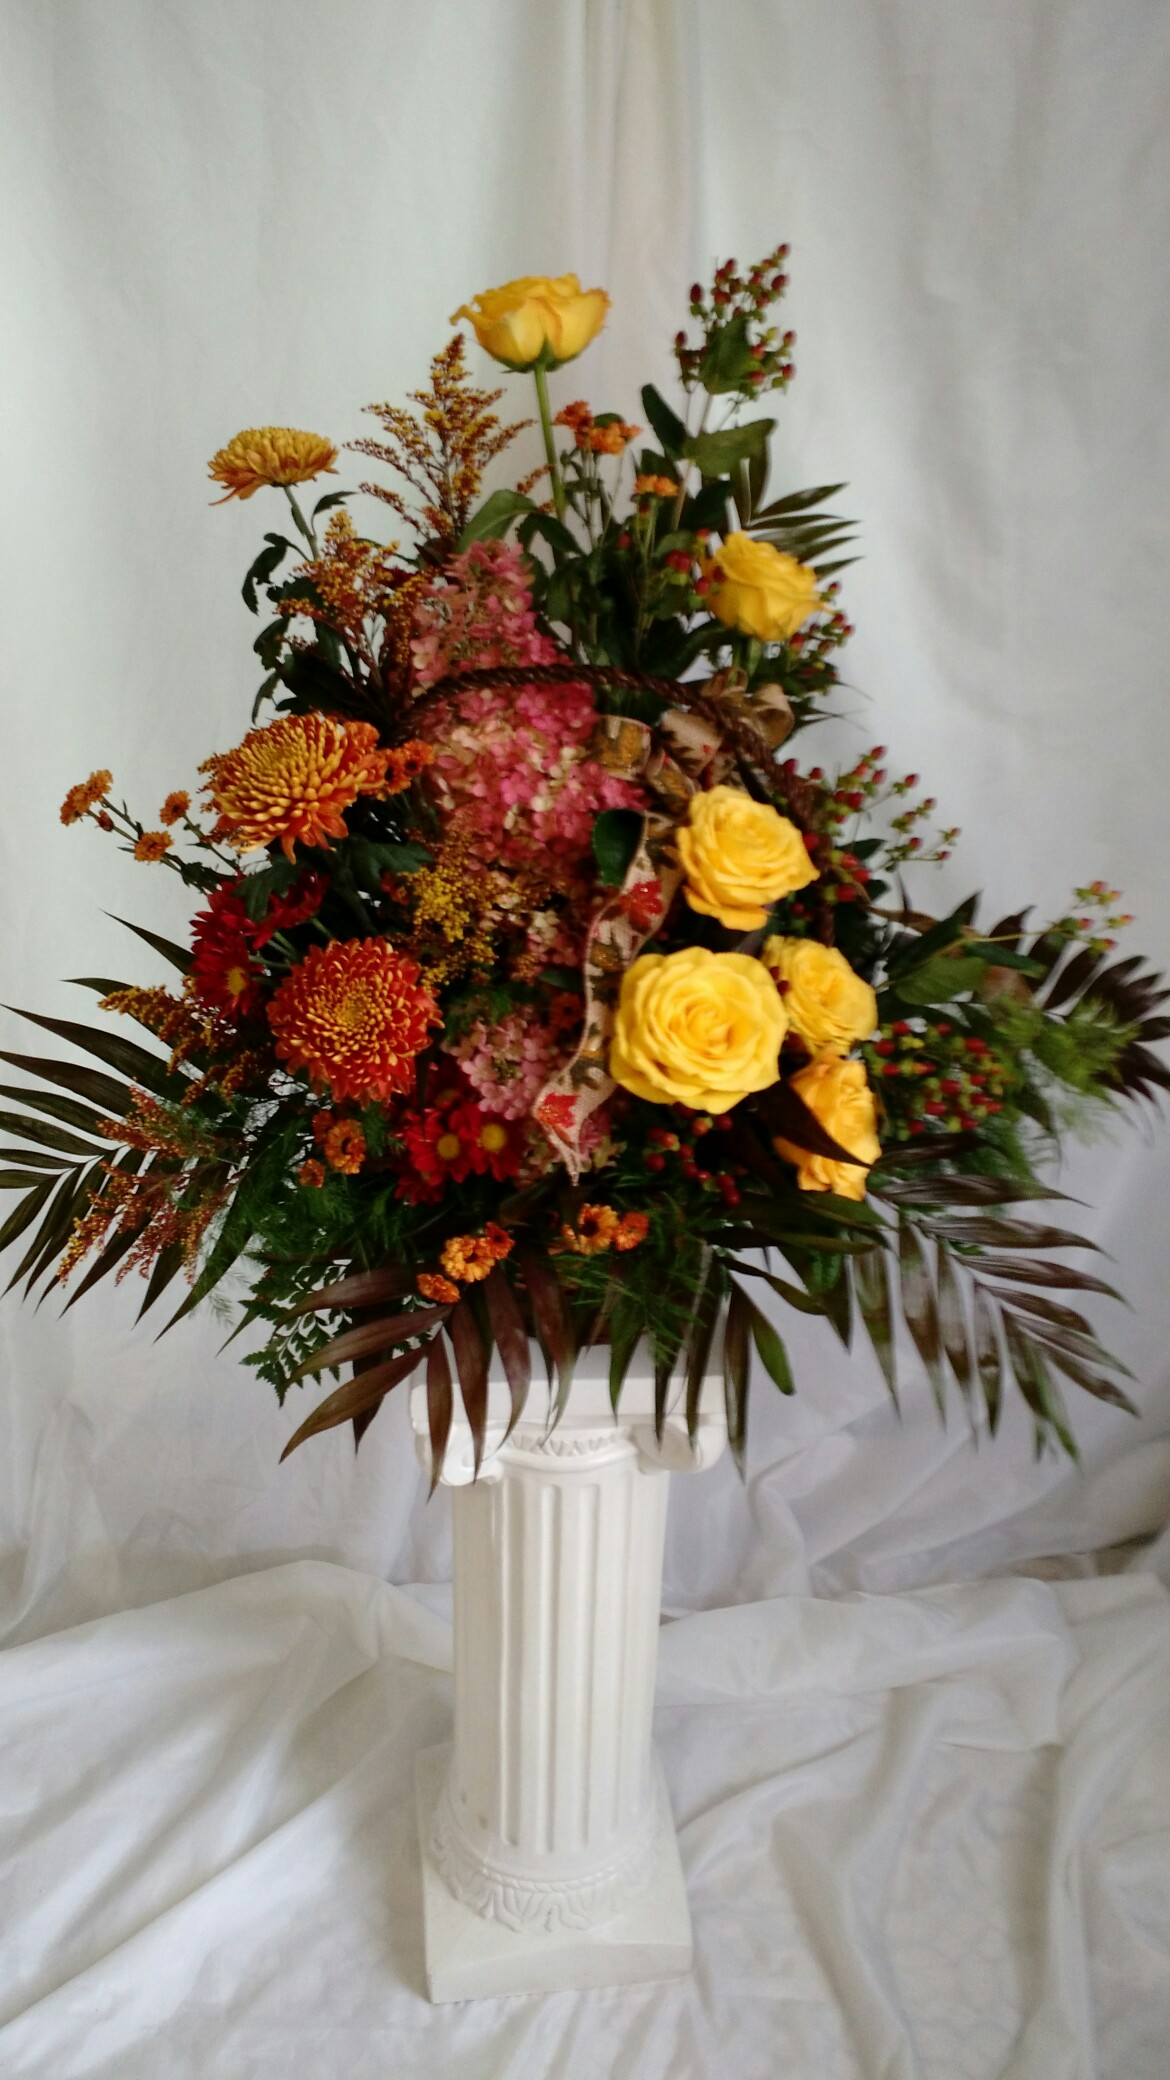 Sunrise Floral & Gifts